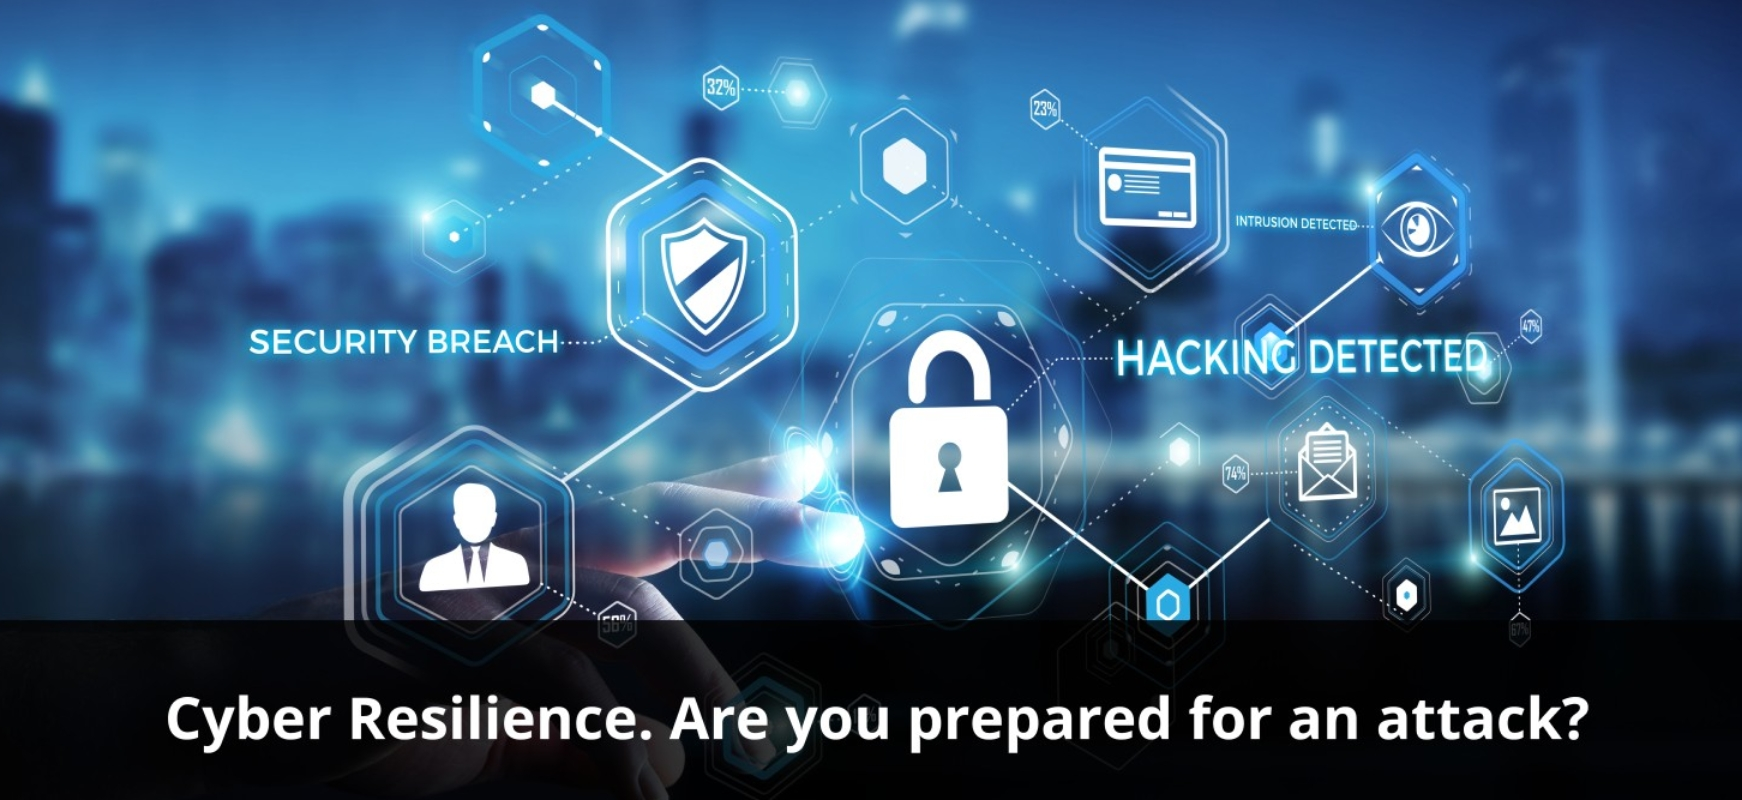 Cyber Resilience. Are you prepared for an attack?